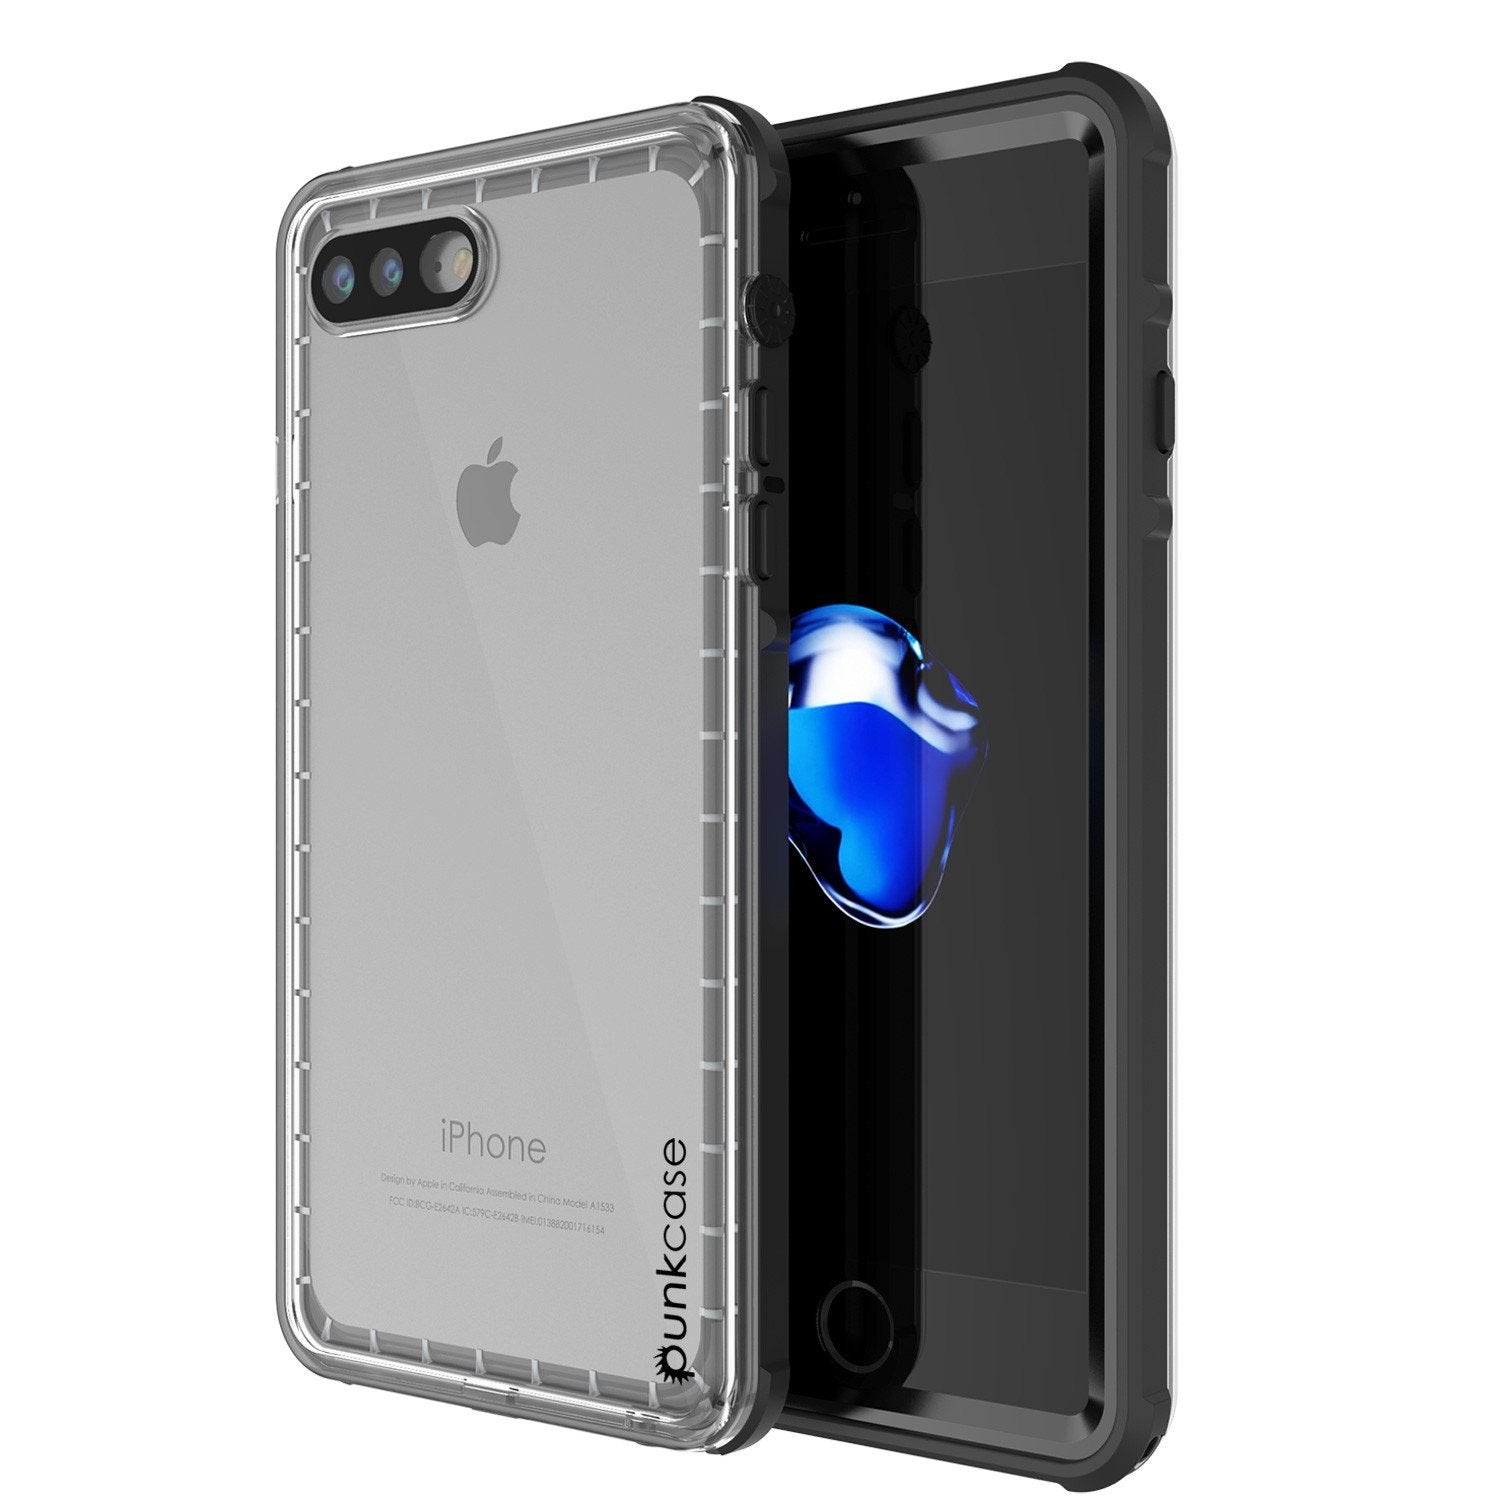 on sale 8fa07 6bc1a iPhone 8+ Plus Waterproof Case, PUNKcase CRYSTAL Black W/ Attached Screen  Protector | Warranty